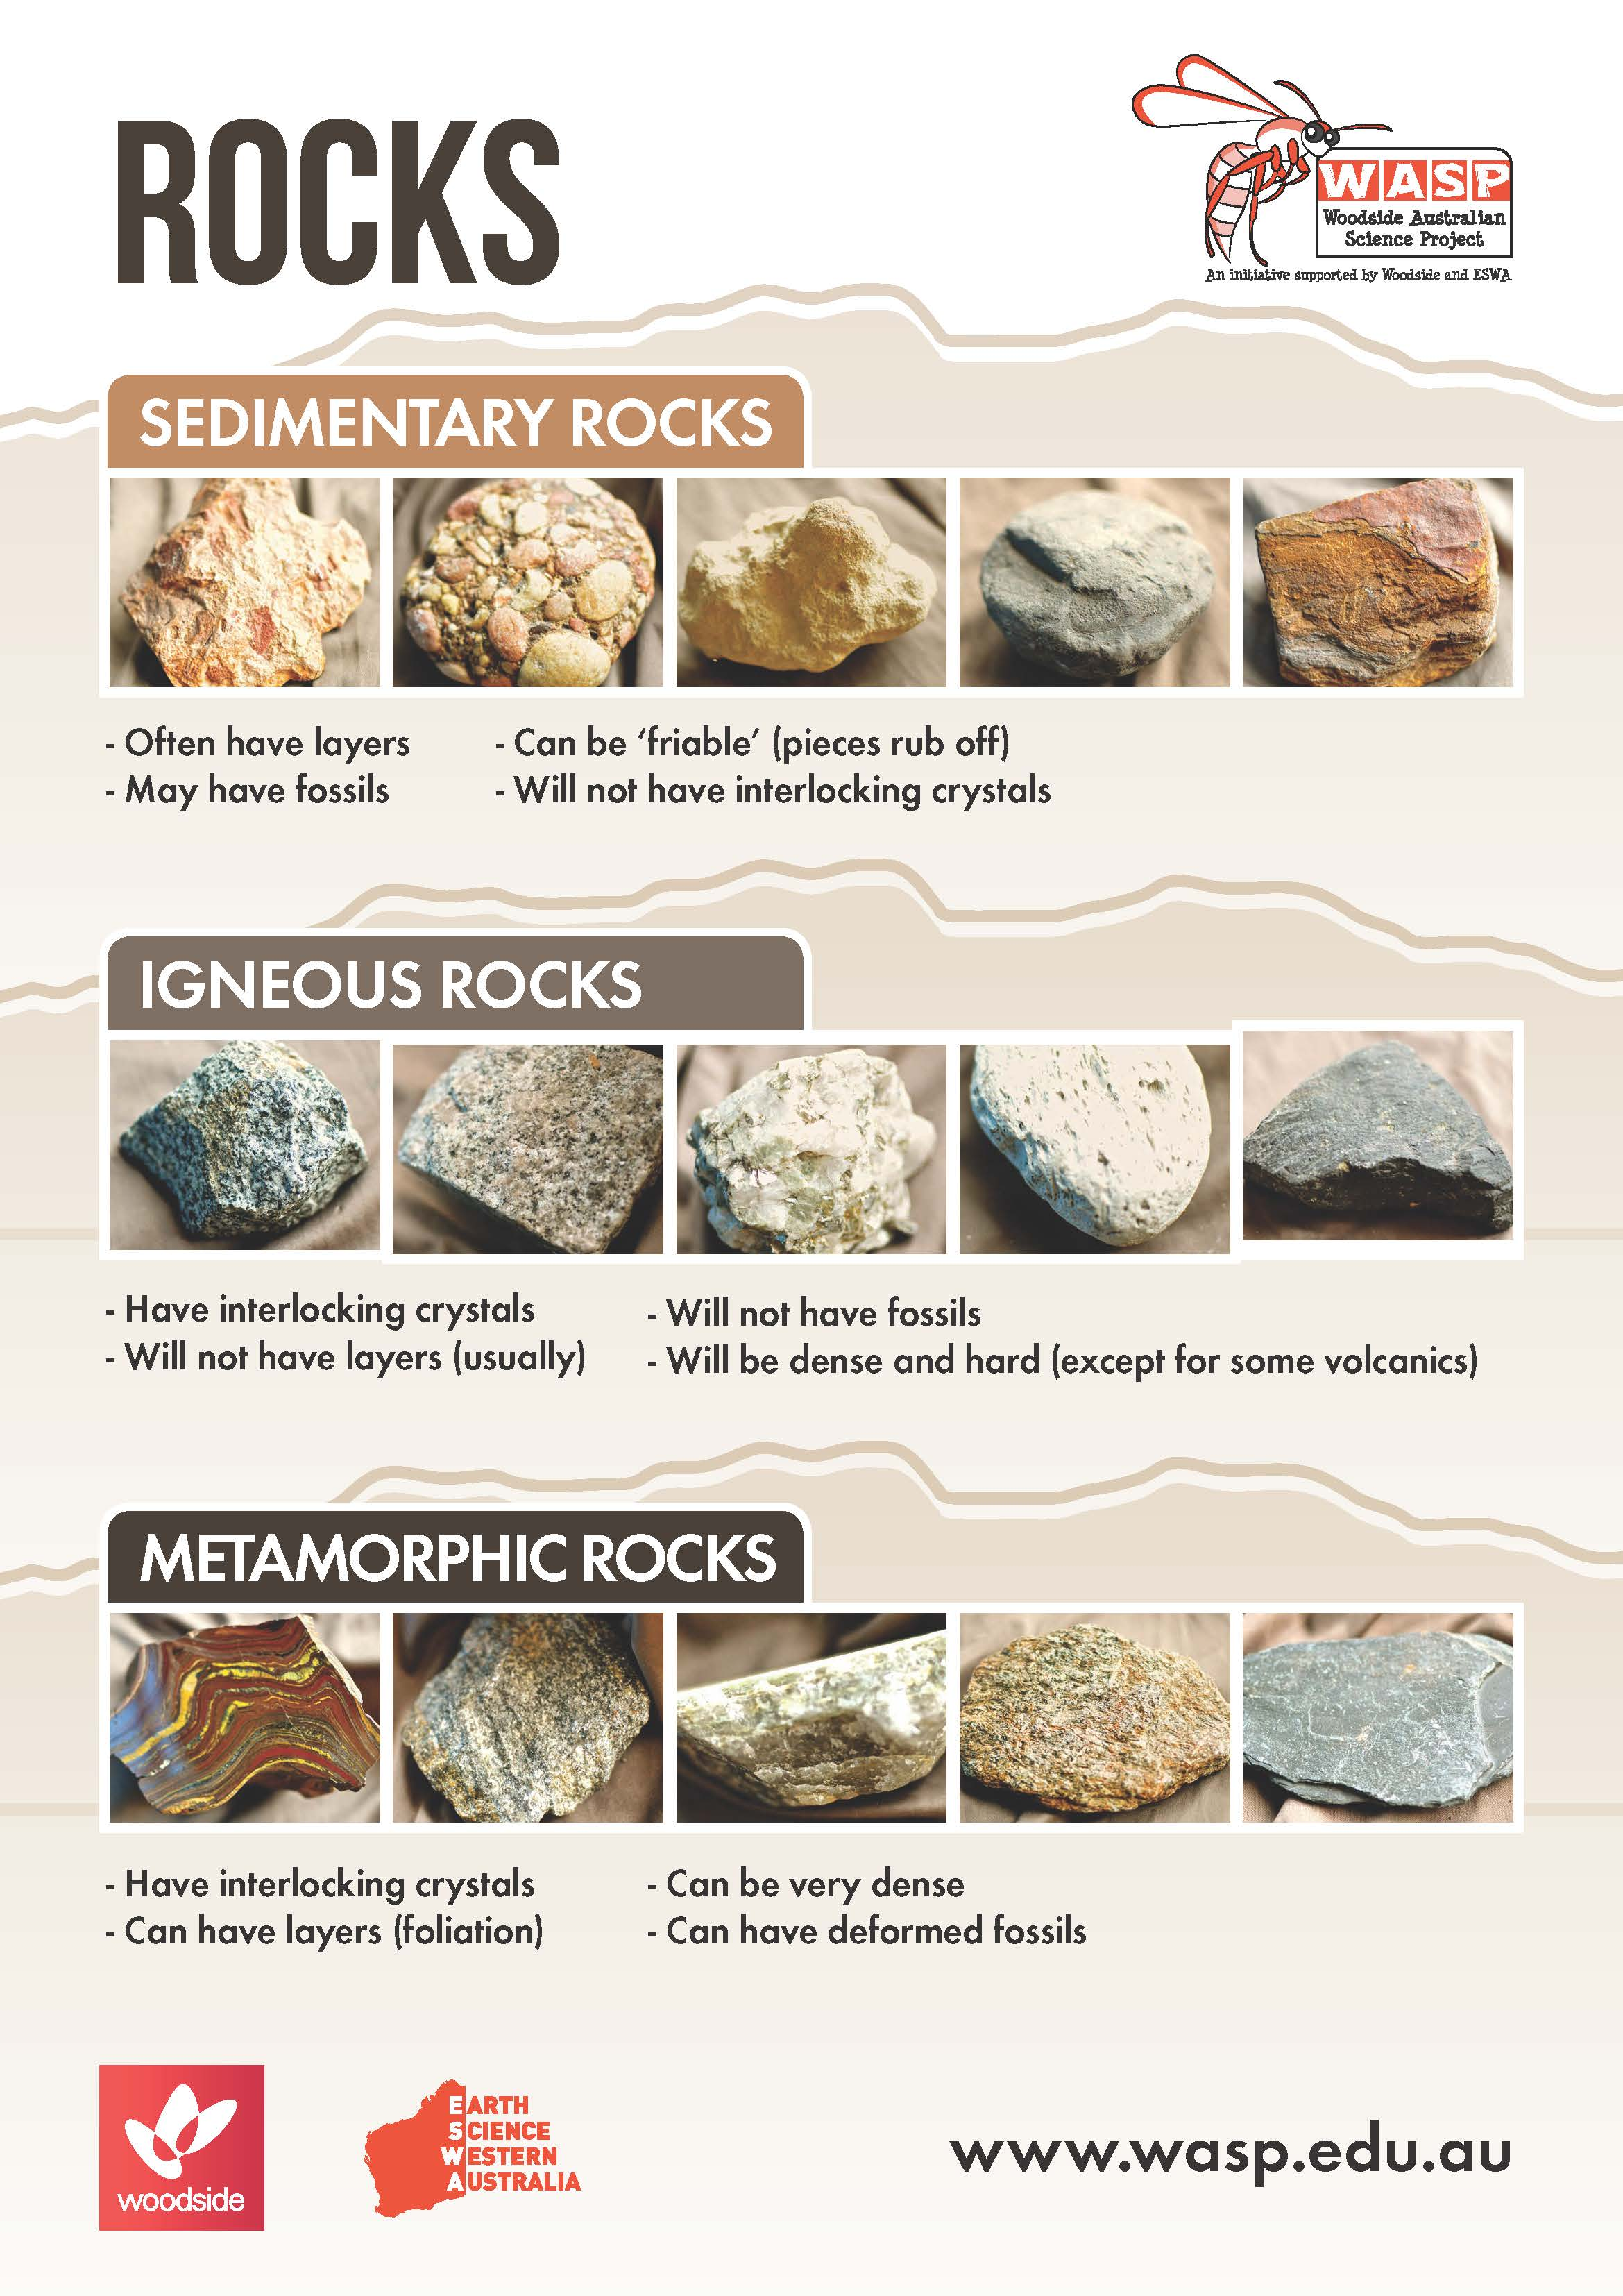 types of rocks quiz worksheets rock and earth science types best free printable worksheets. Black Bedroom Furniture Sets. Home Design Ideas